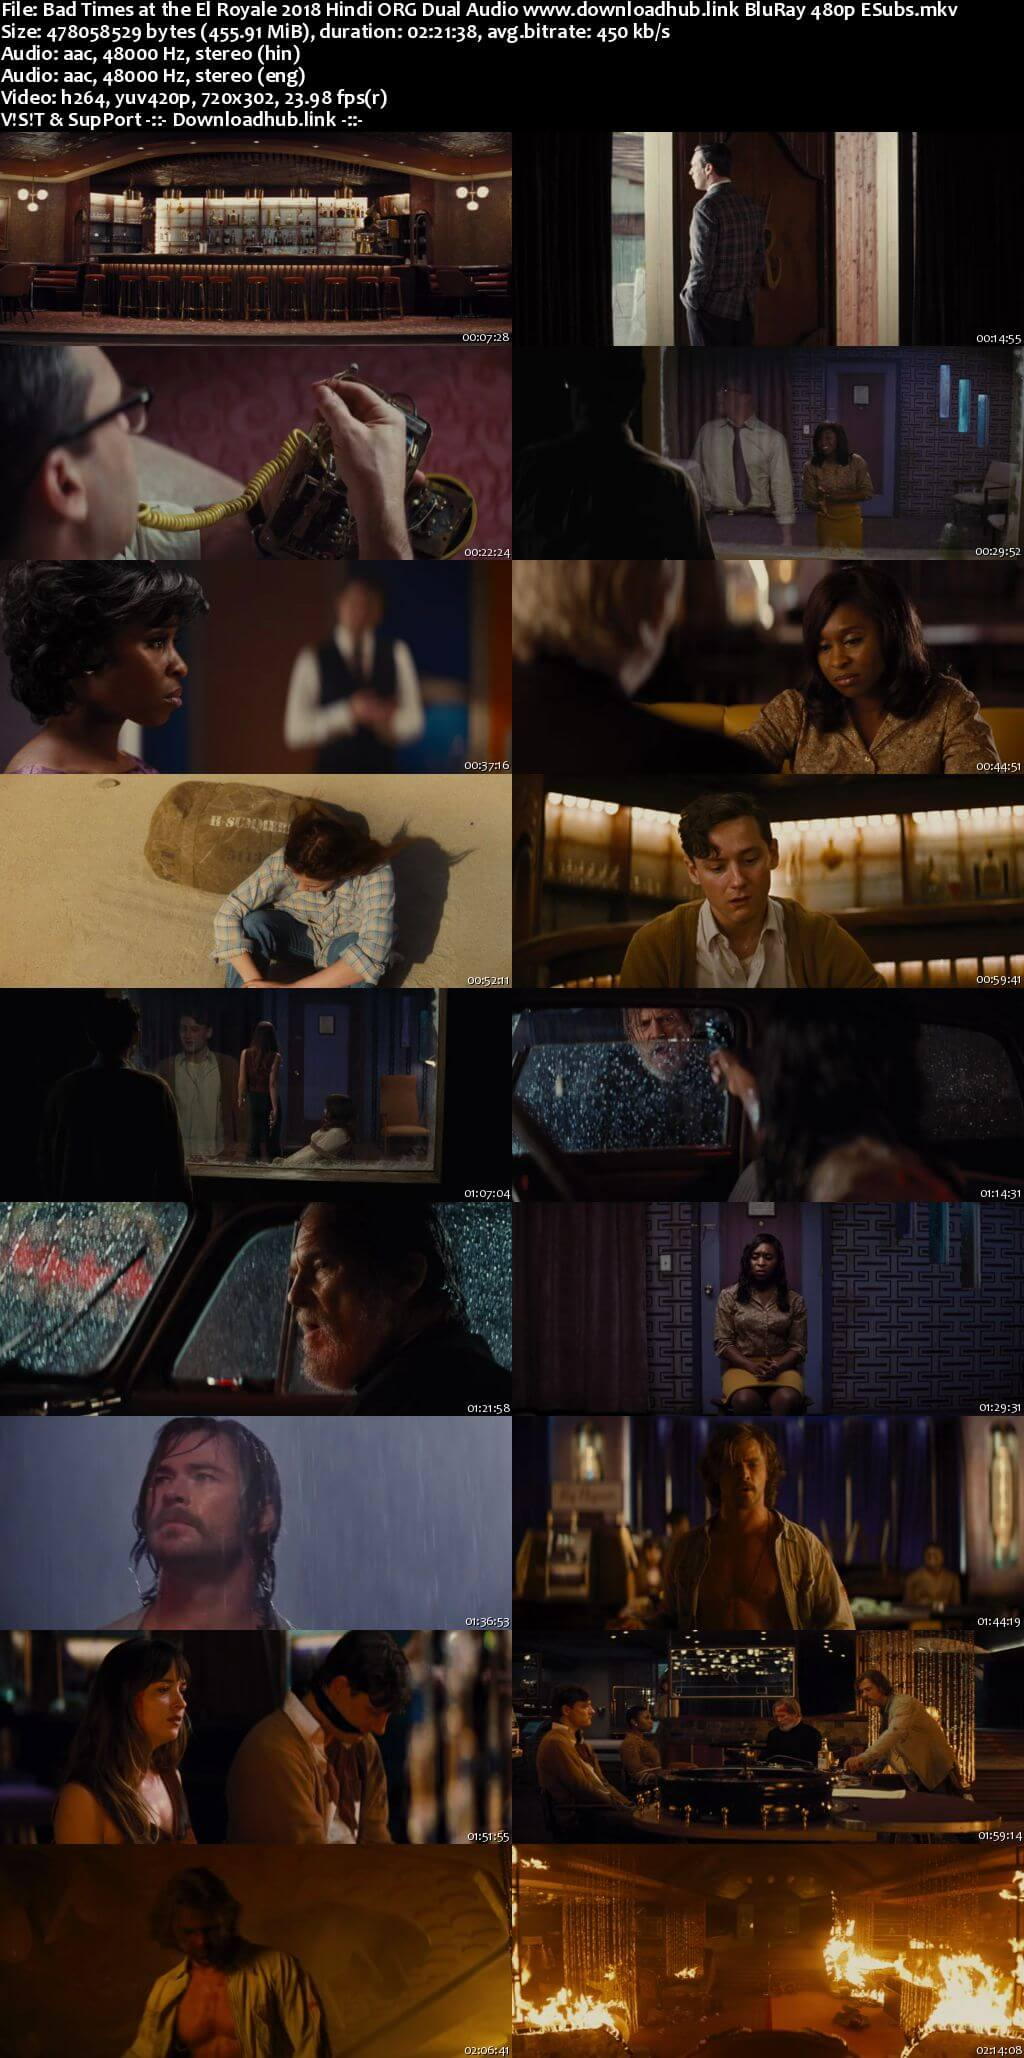 Bad Times at the El Royale 2018 Hindi ORG Dual Audio 450MB BluRay 480p ESubs